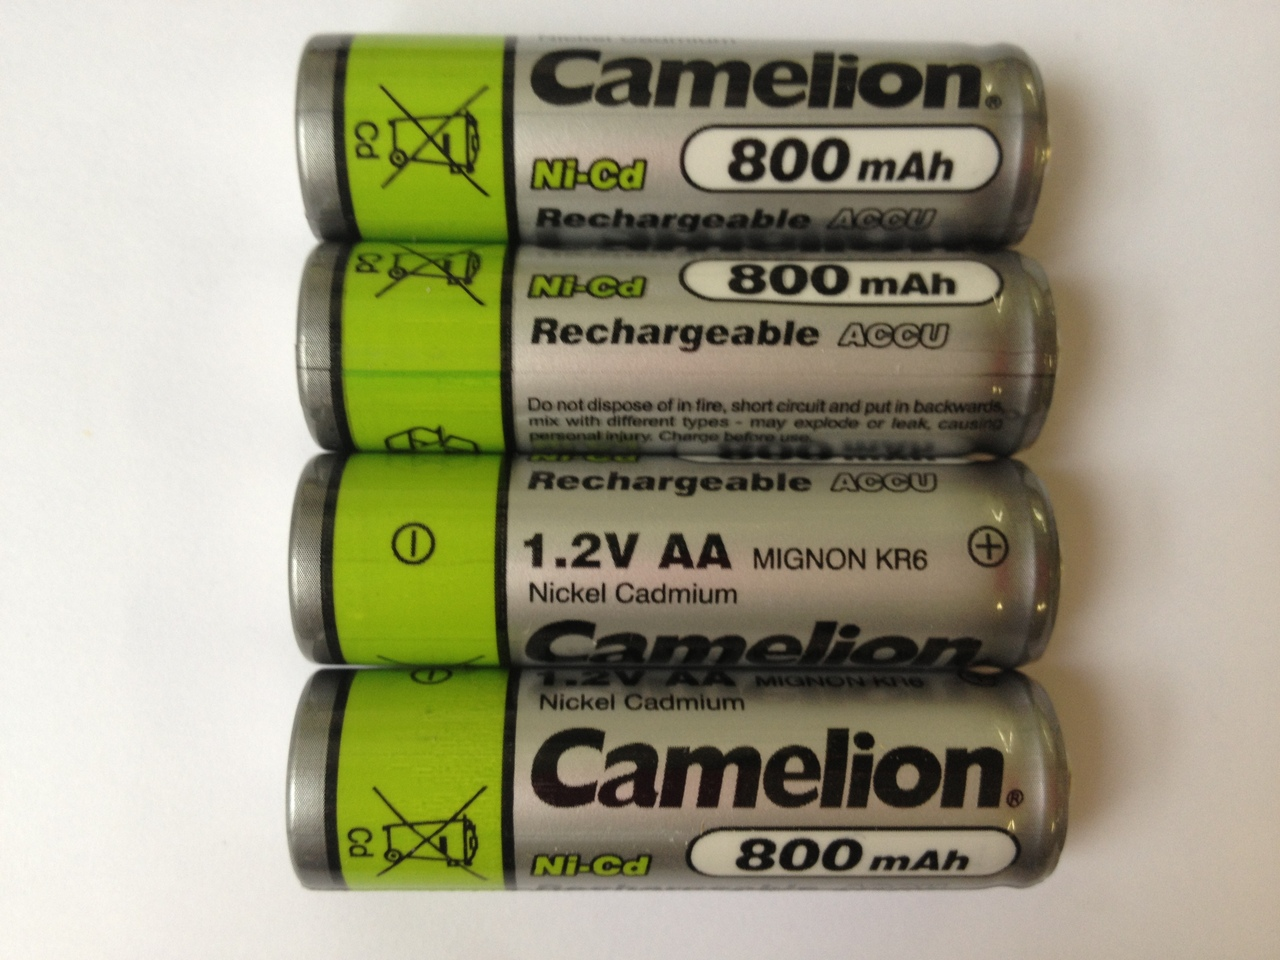 Camelion AA Rechargeable NiCD Batteries 800mAH 4 Pack + FREE SHIPPING!